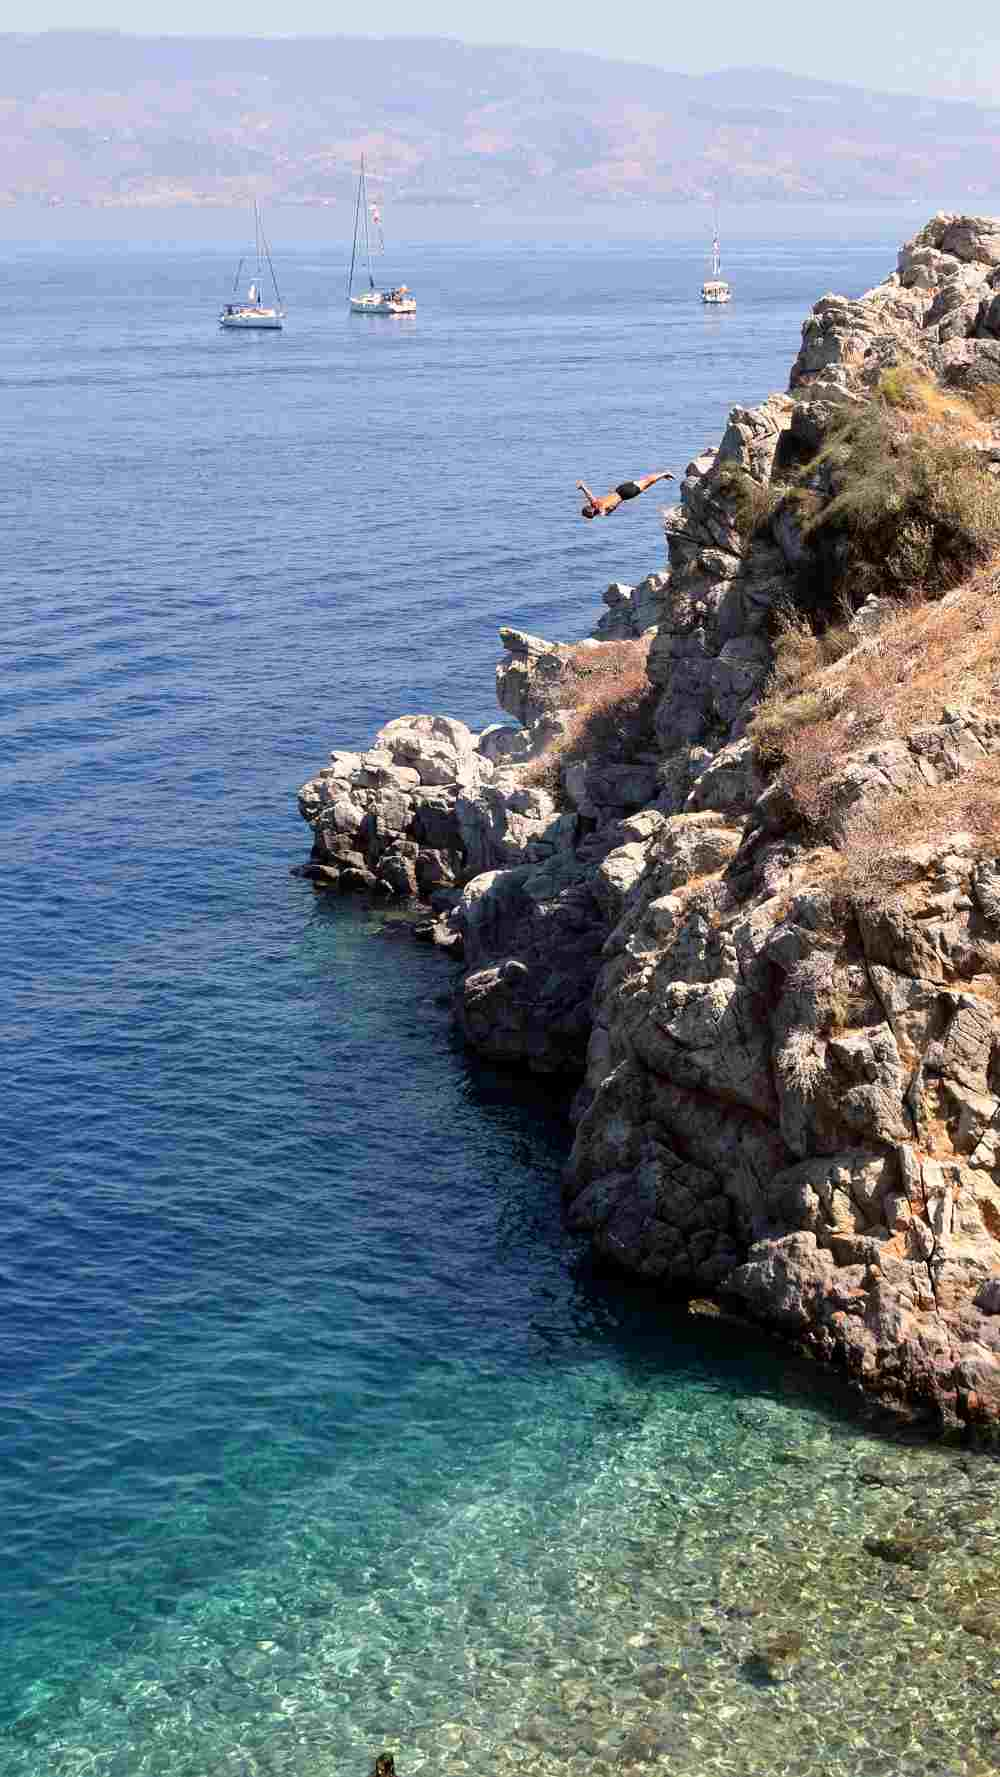 hydra-cliff-diving-aleksander-atmalex-3